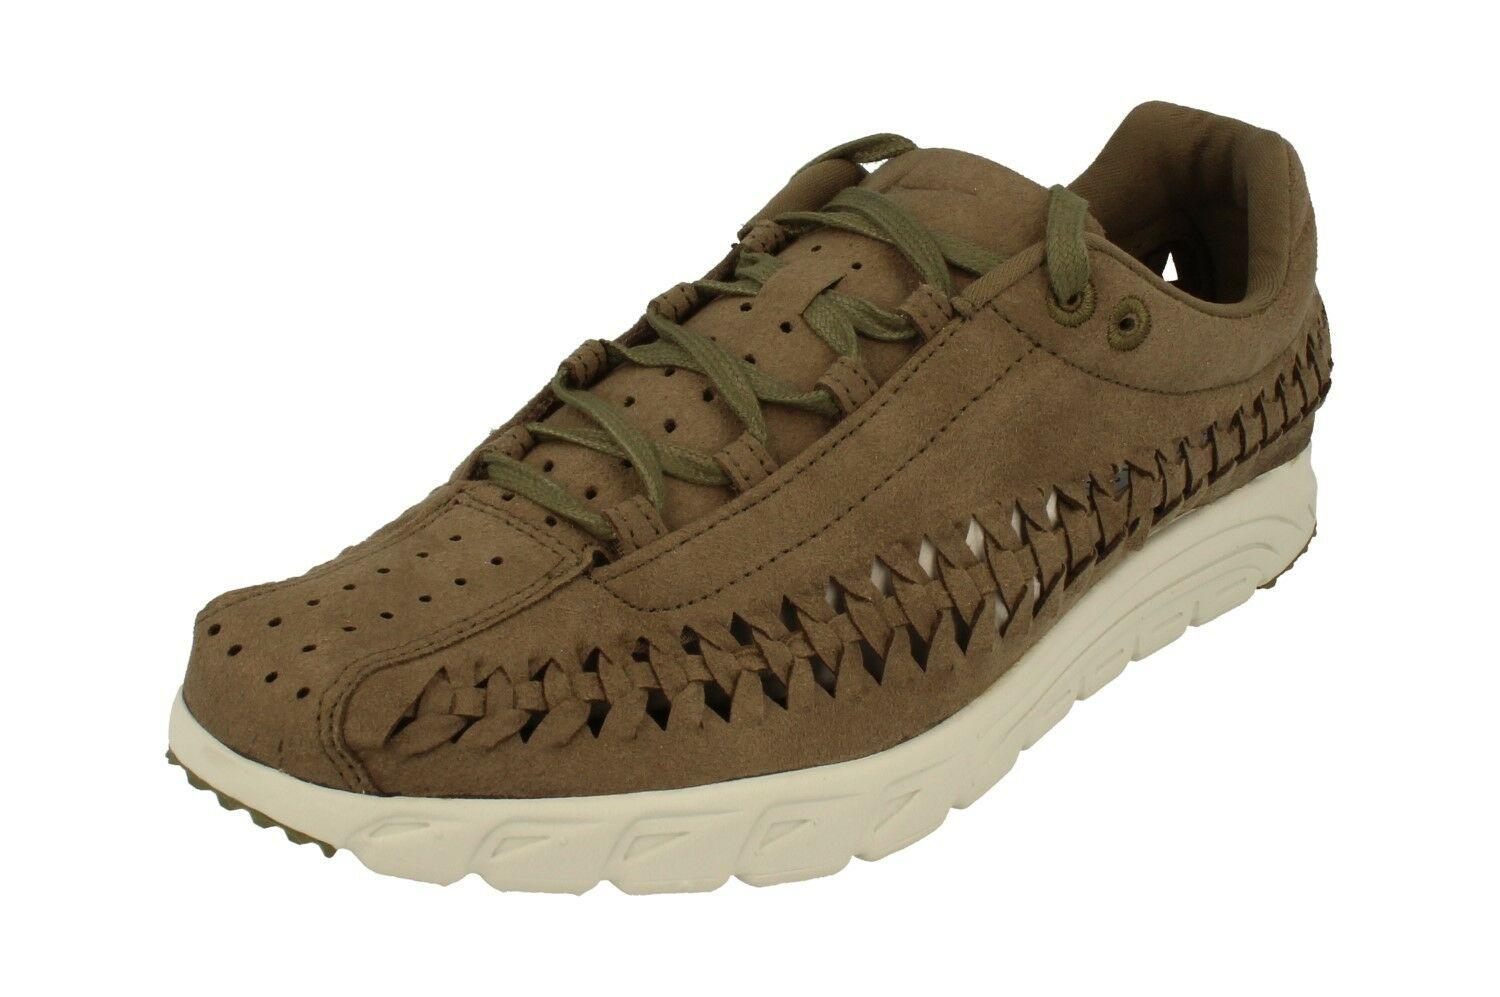 Cheap and beautiful fashion Nike Mayfly Woven Mens Running Trainers 833132 Sneakers Shoes 200